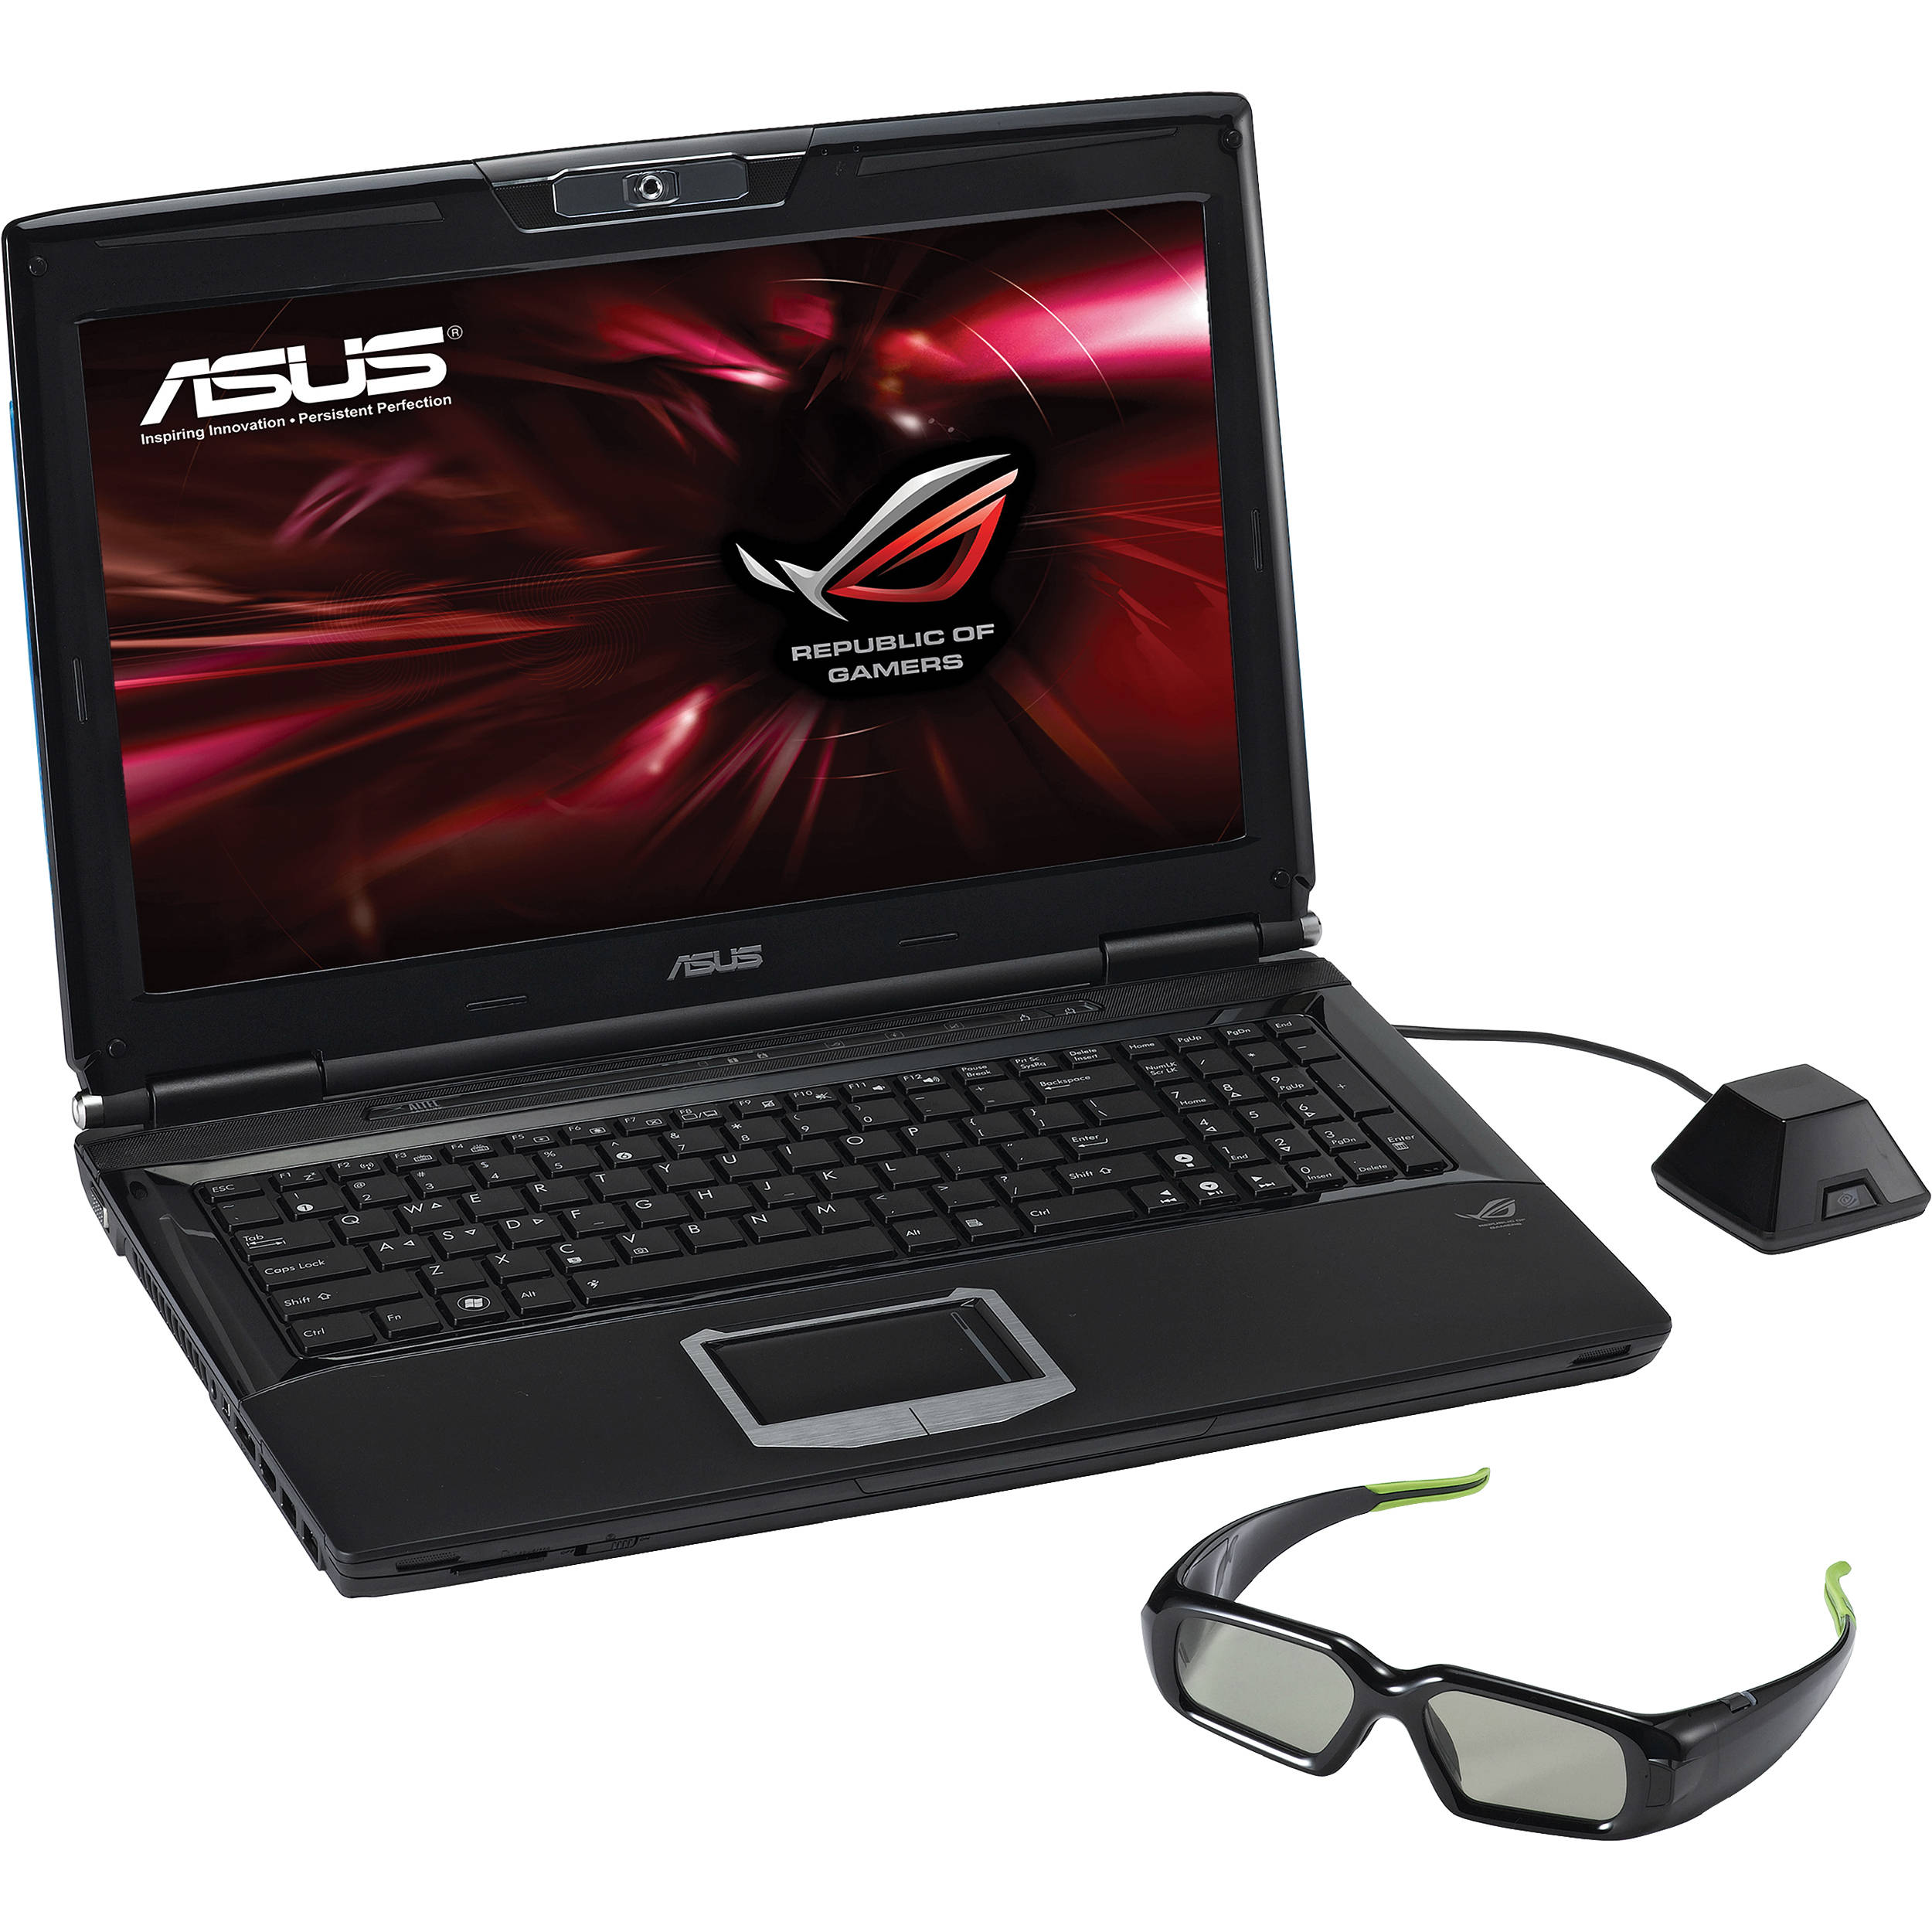 DRIVER: ASUS G51JX NOTEBOOK INTEL TURBO BOOST TECHNOLOGY